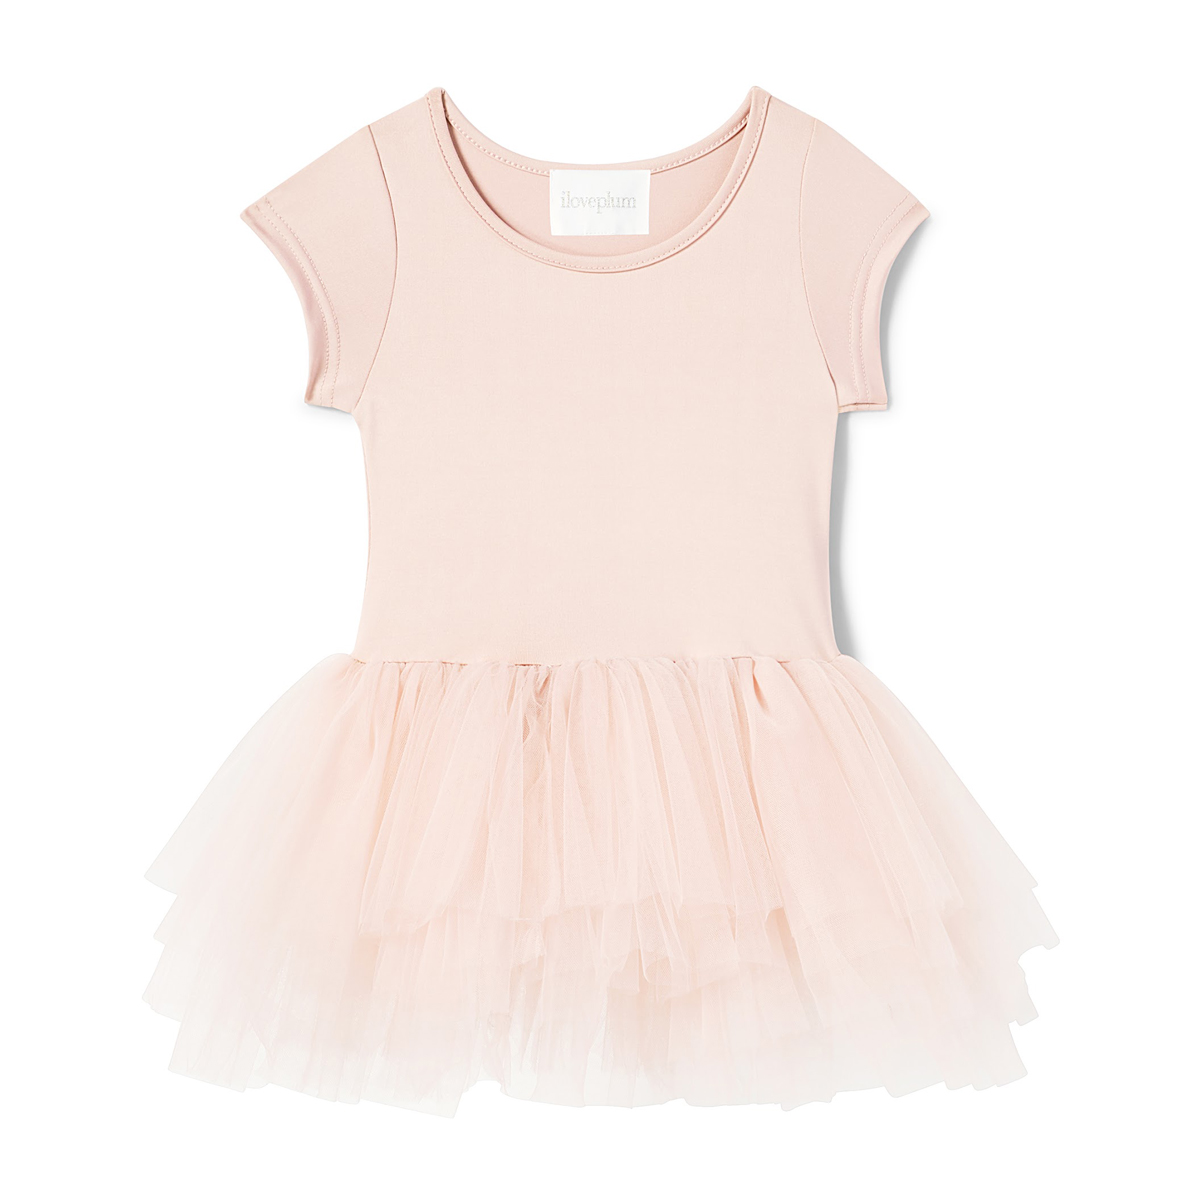 ILovePlum Short Sleeve Tutu Dress in Shirley Light Pink